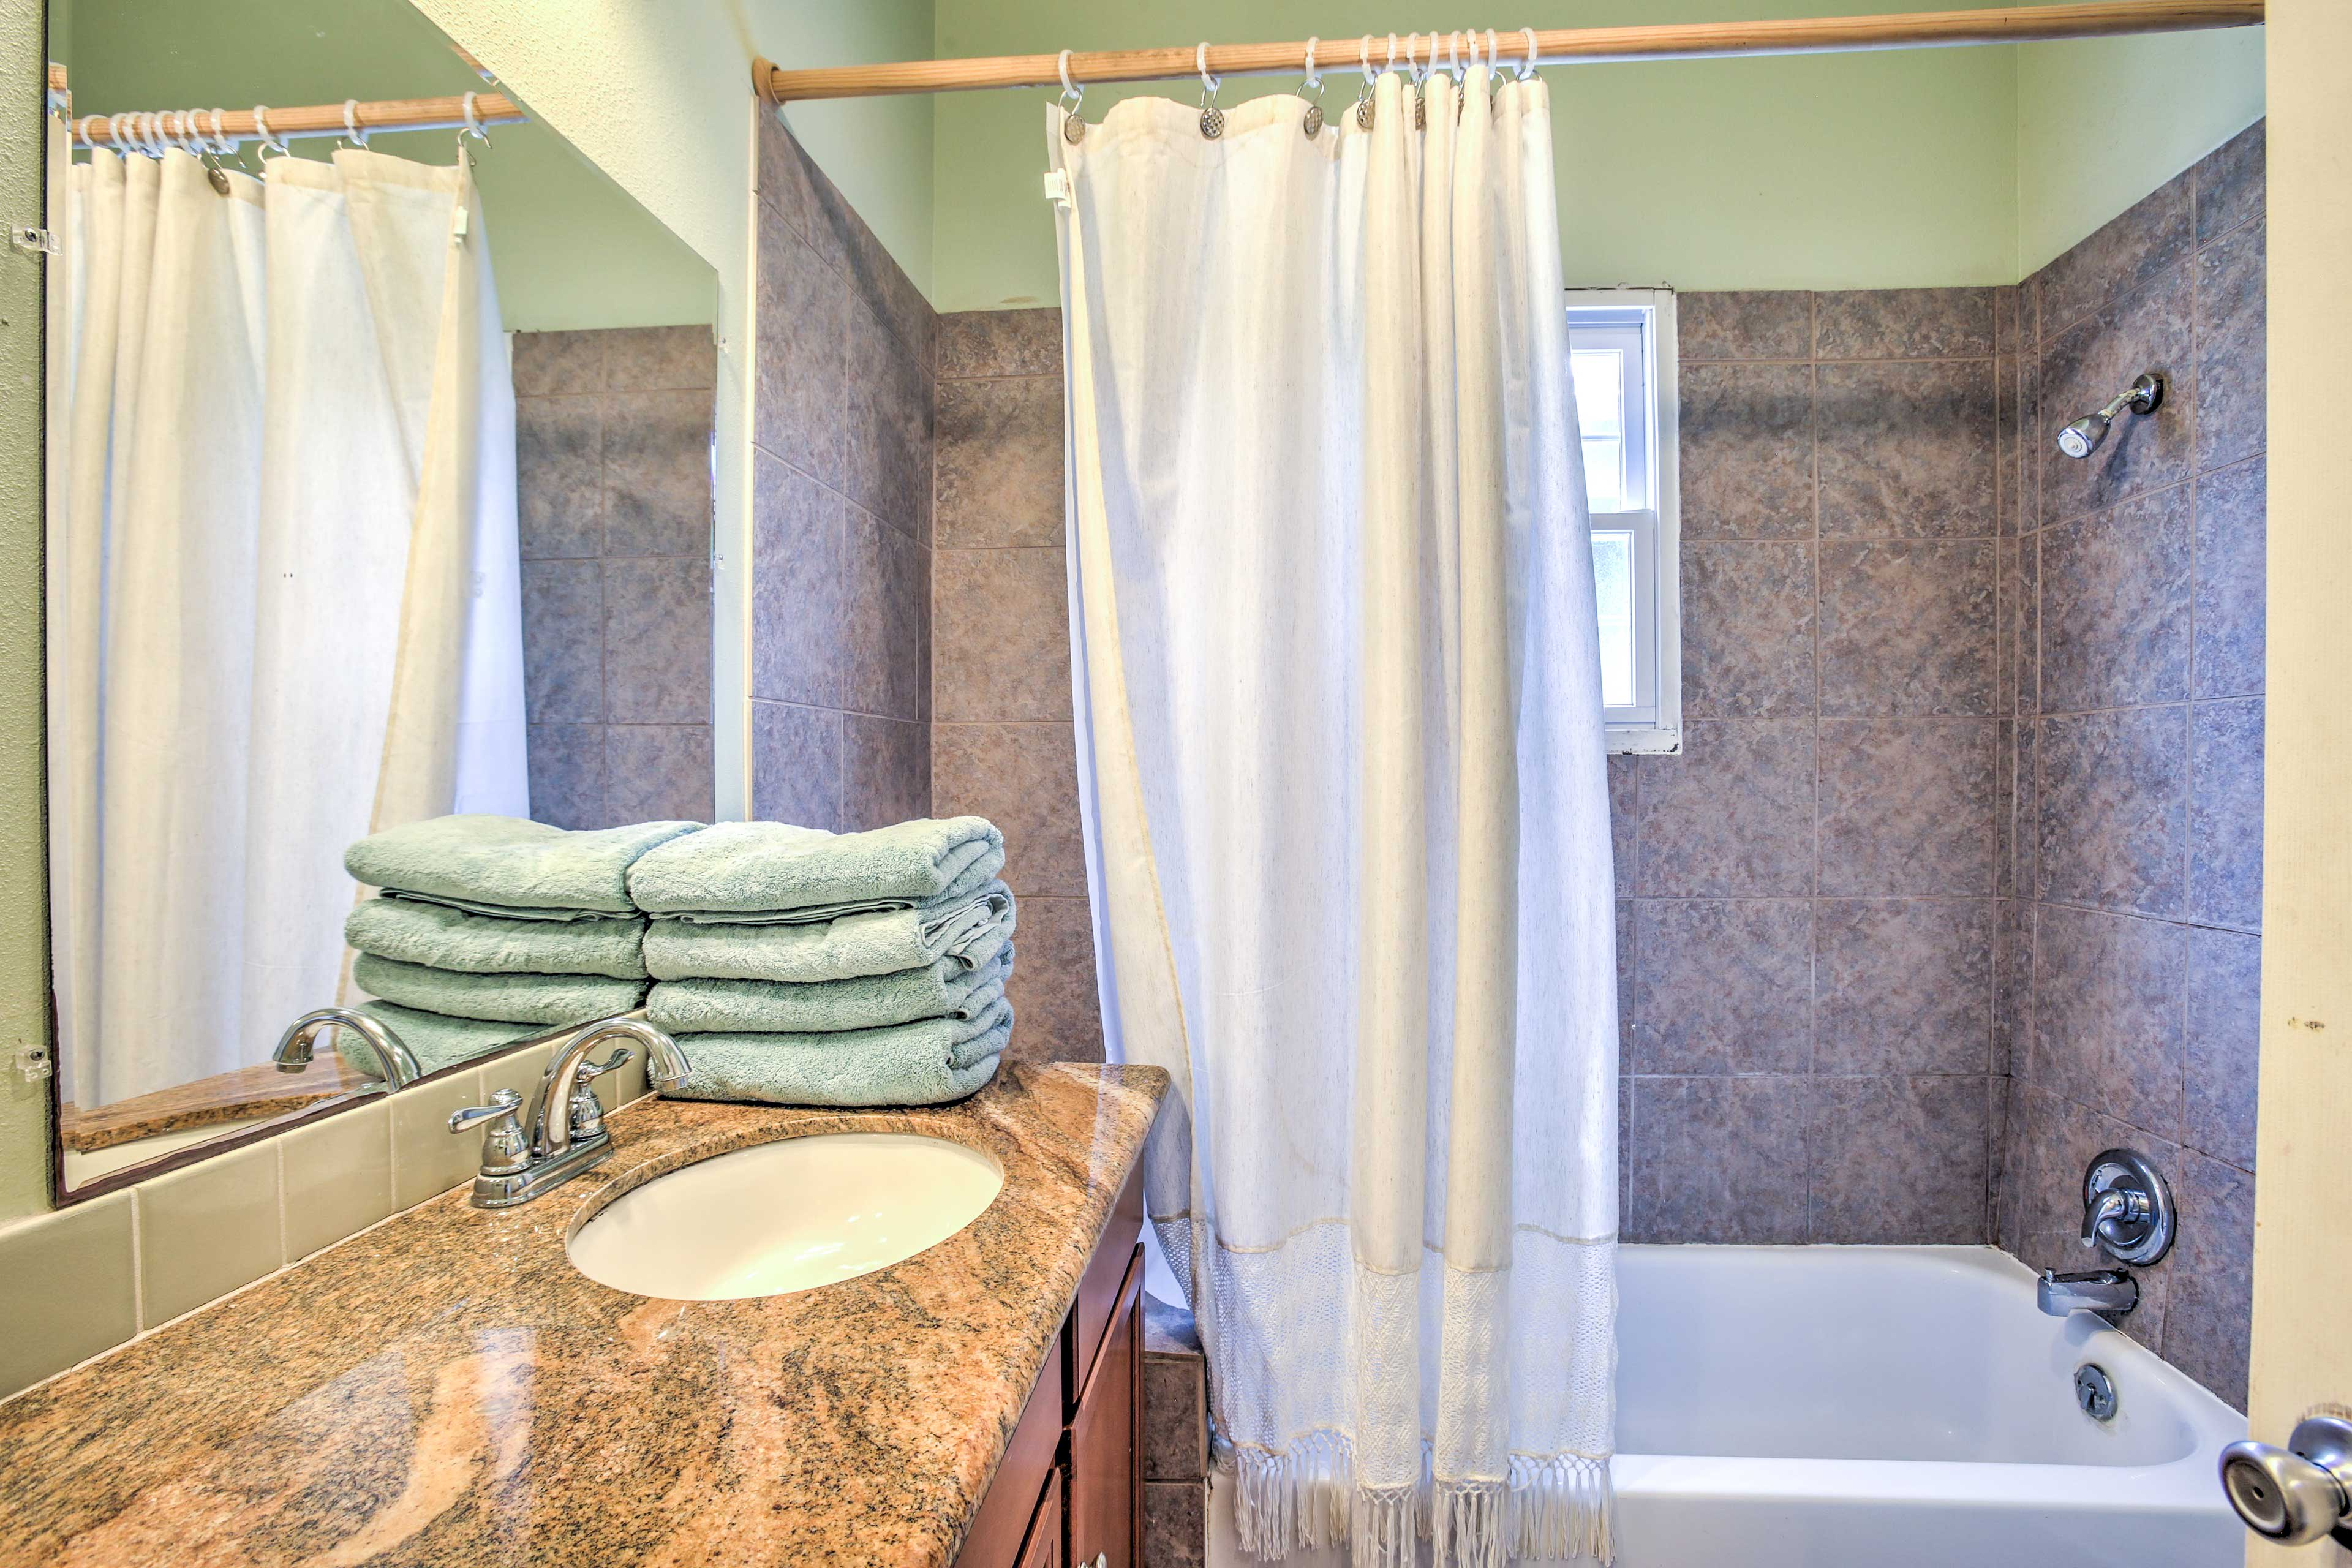 Treat yourself to a rejuvenating shower in the upgraded bathroom.